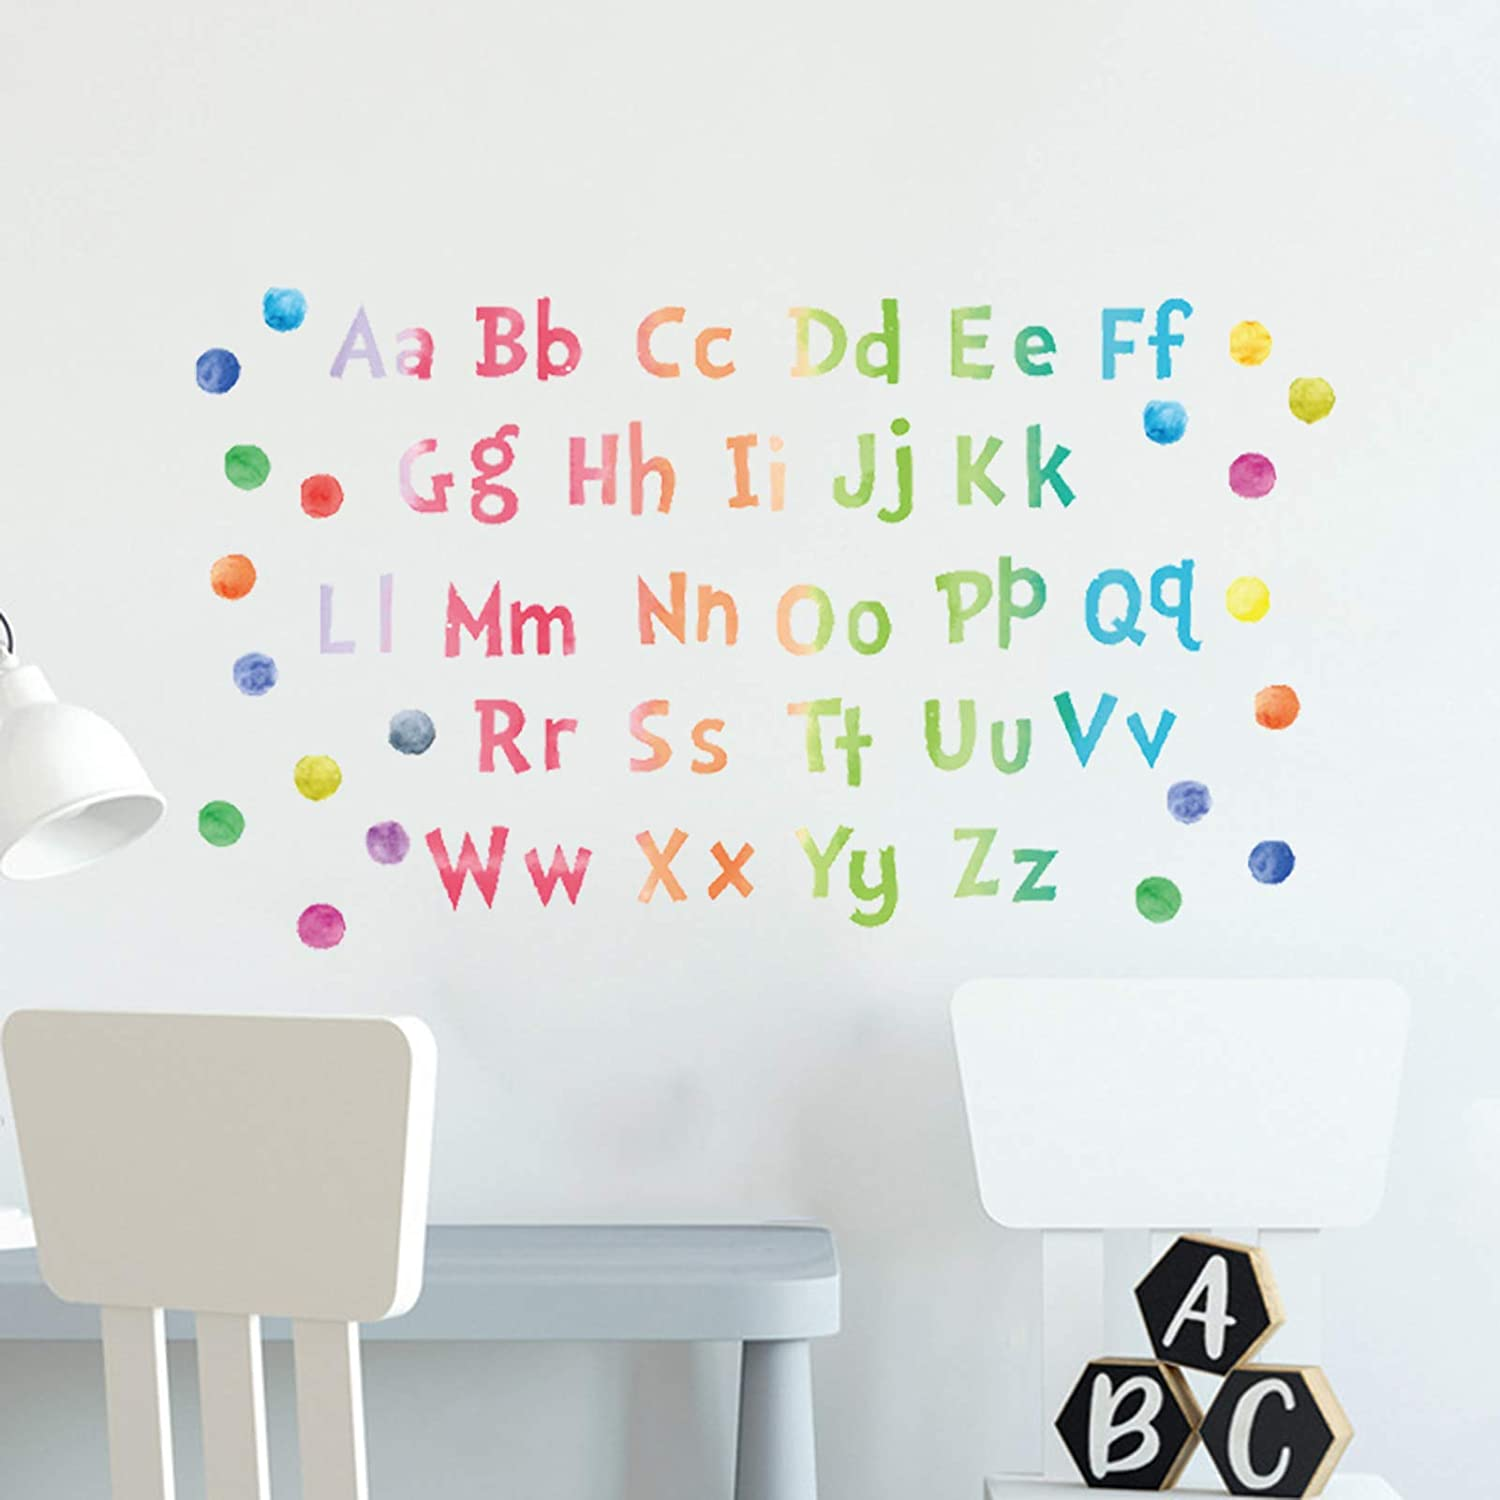 Alphabet Wall Stickers Educational ABC Wall Decals for Kids Room, Watercolor Alphabet Letter Wall Decor Posters Vinyl Colorful Wall Murals for Baby Room Classroom Nursery